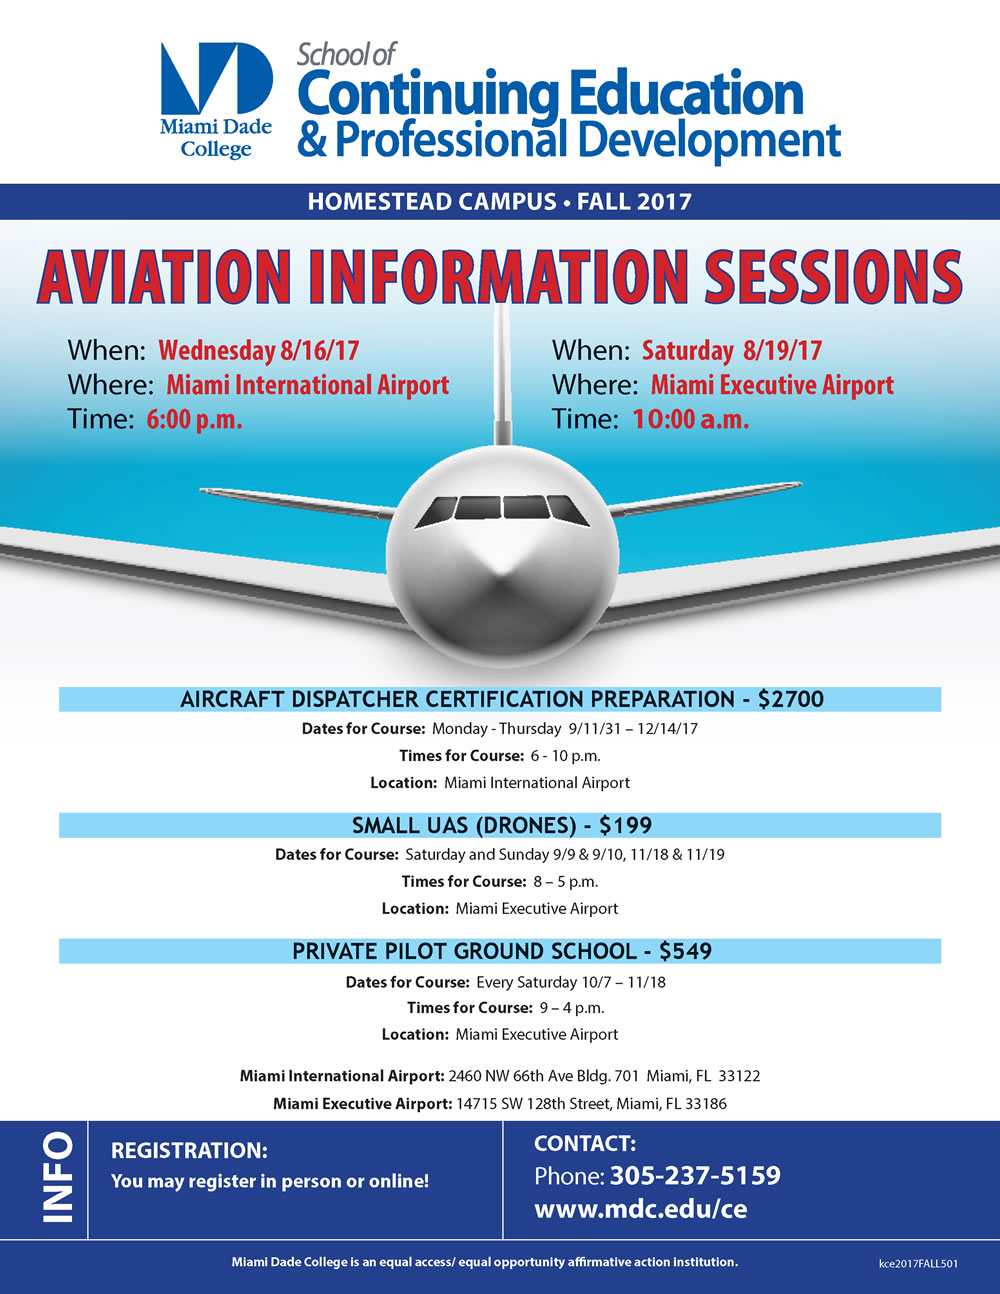 MDC Aviation Information Sessions